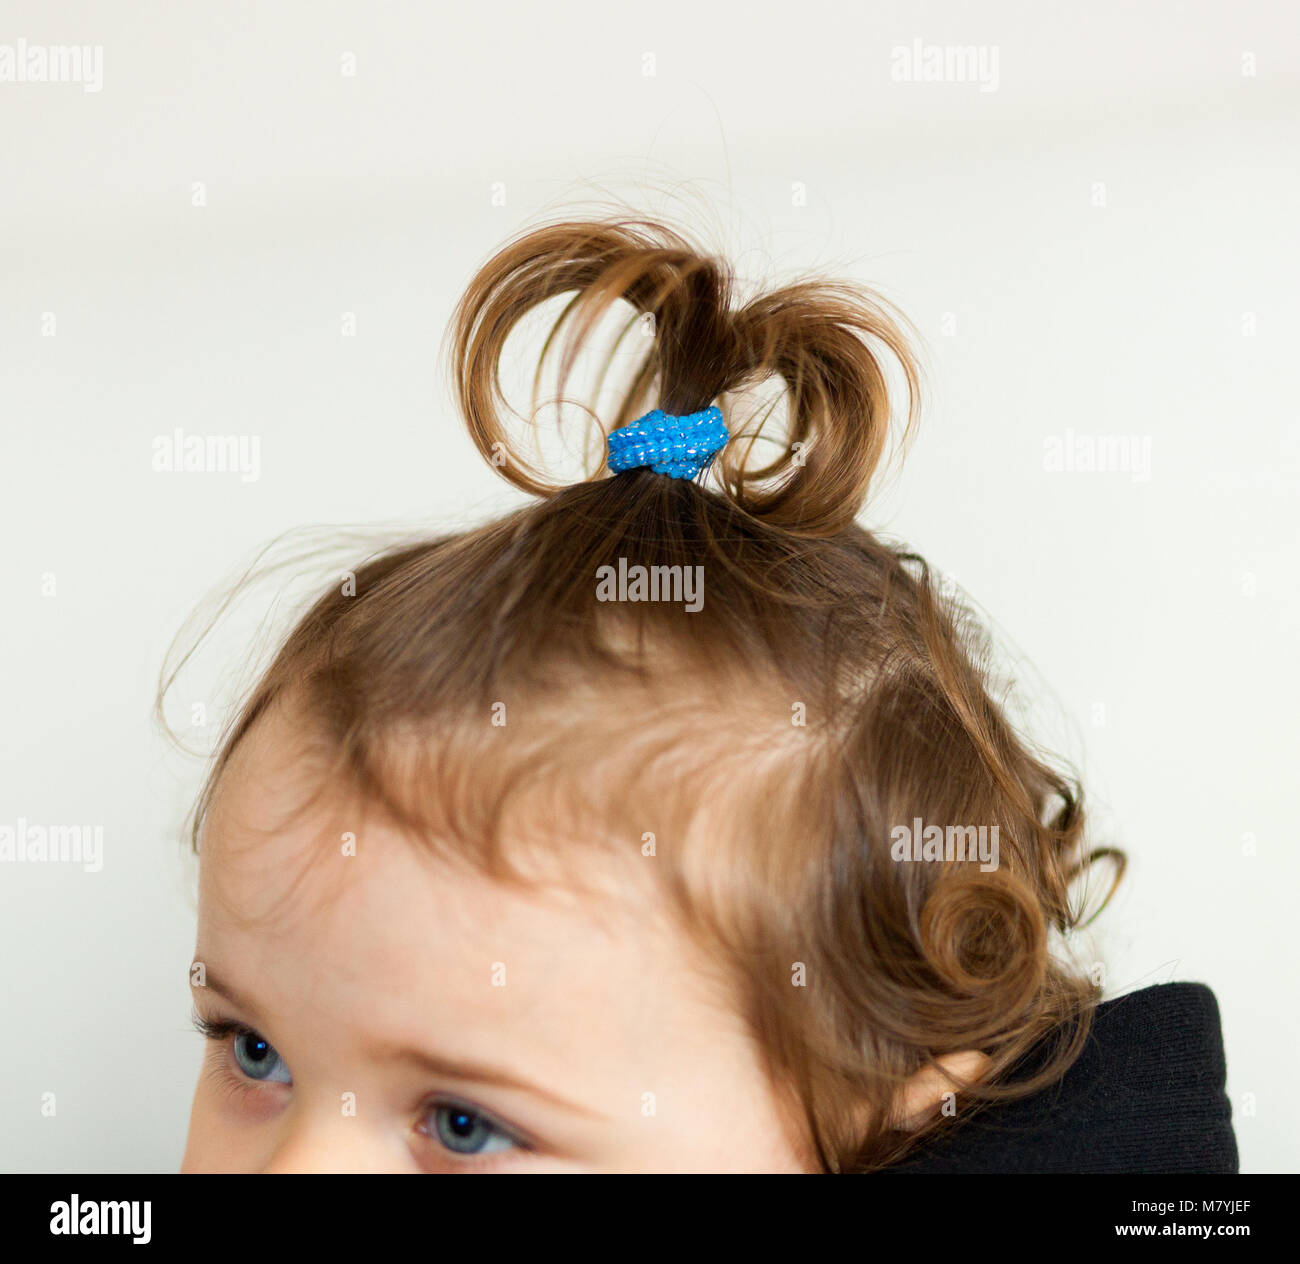 Hair hairstyle shaped fountain or onion of a toddler baby girl. - Stock Image